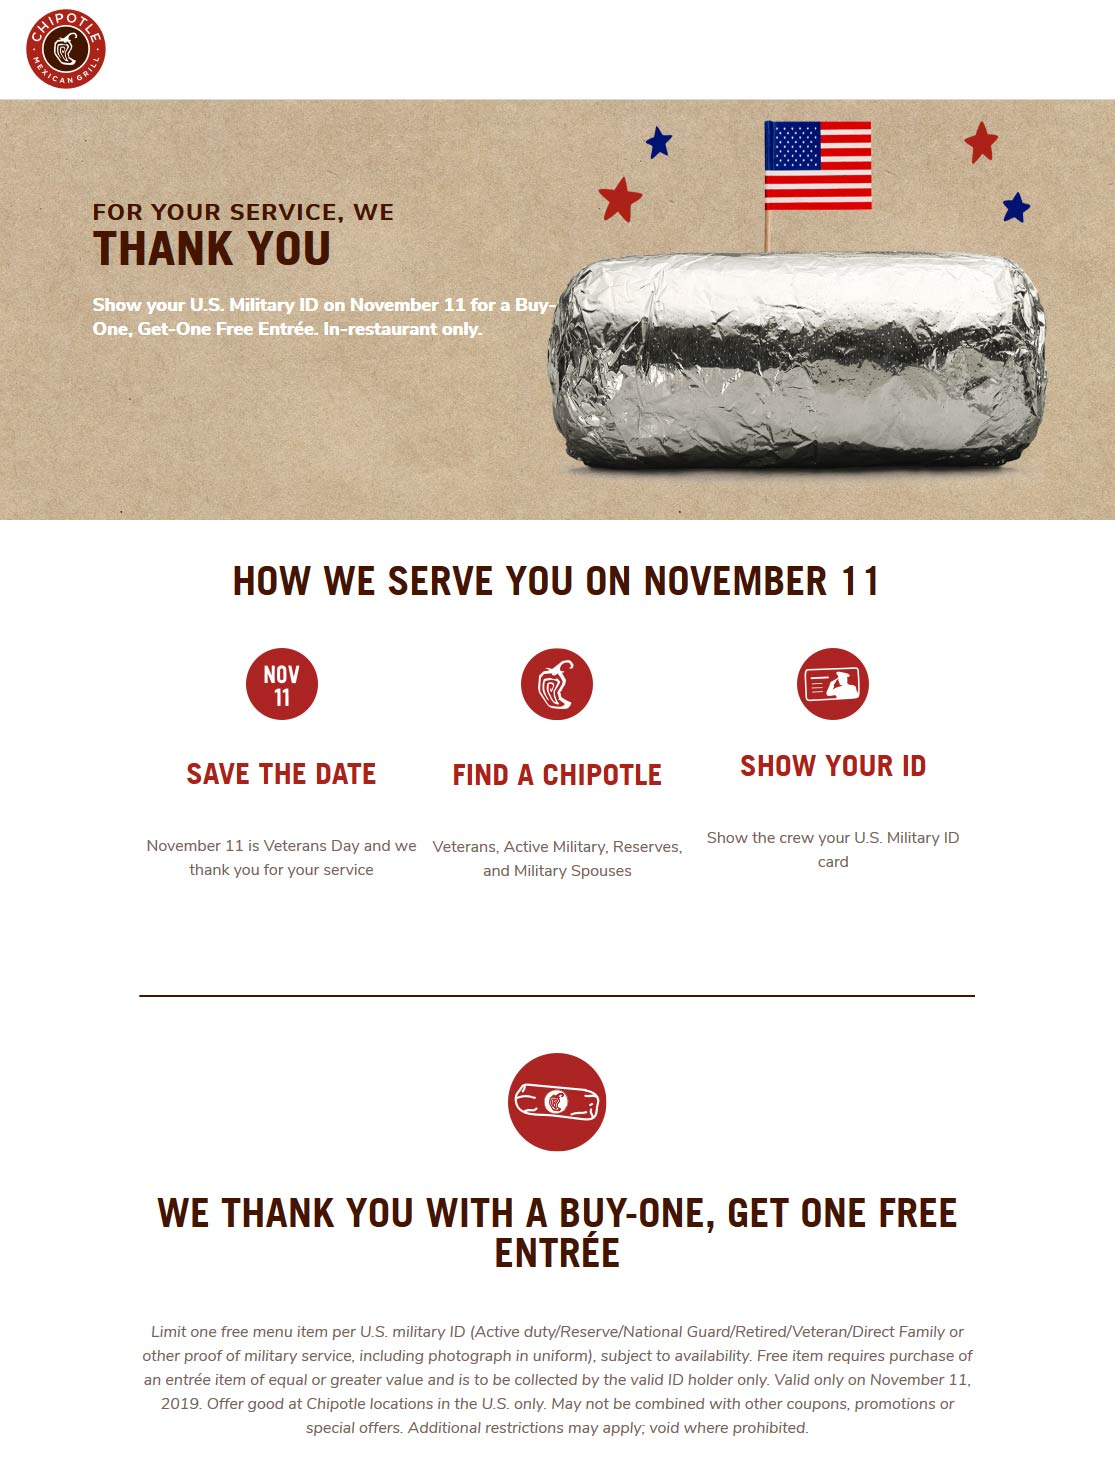 Chipotle Coupon January 2020 Military ID = second entree free today at Chipotle